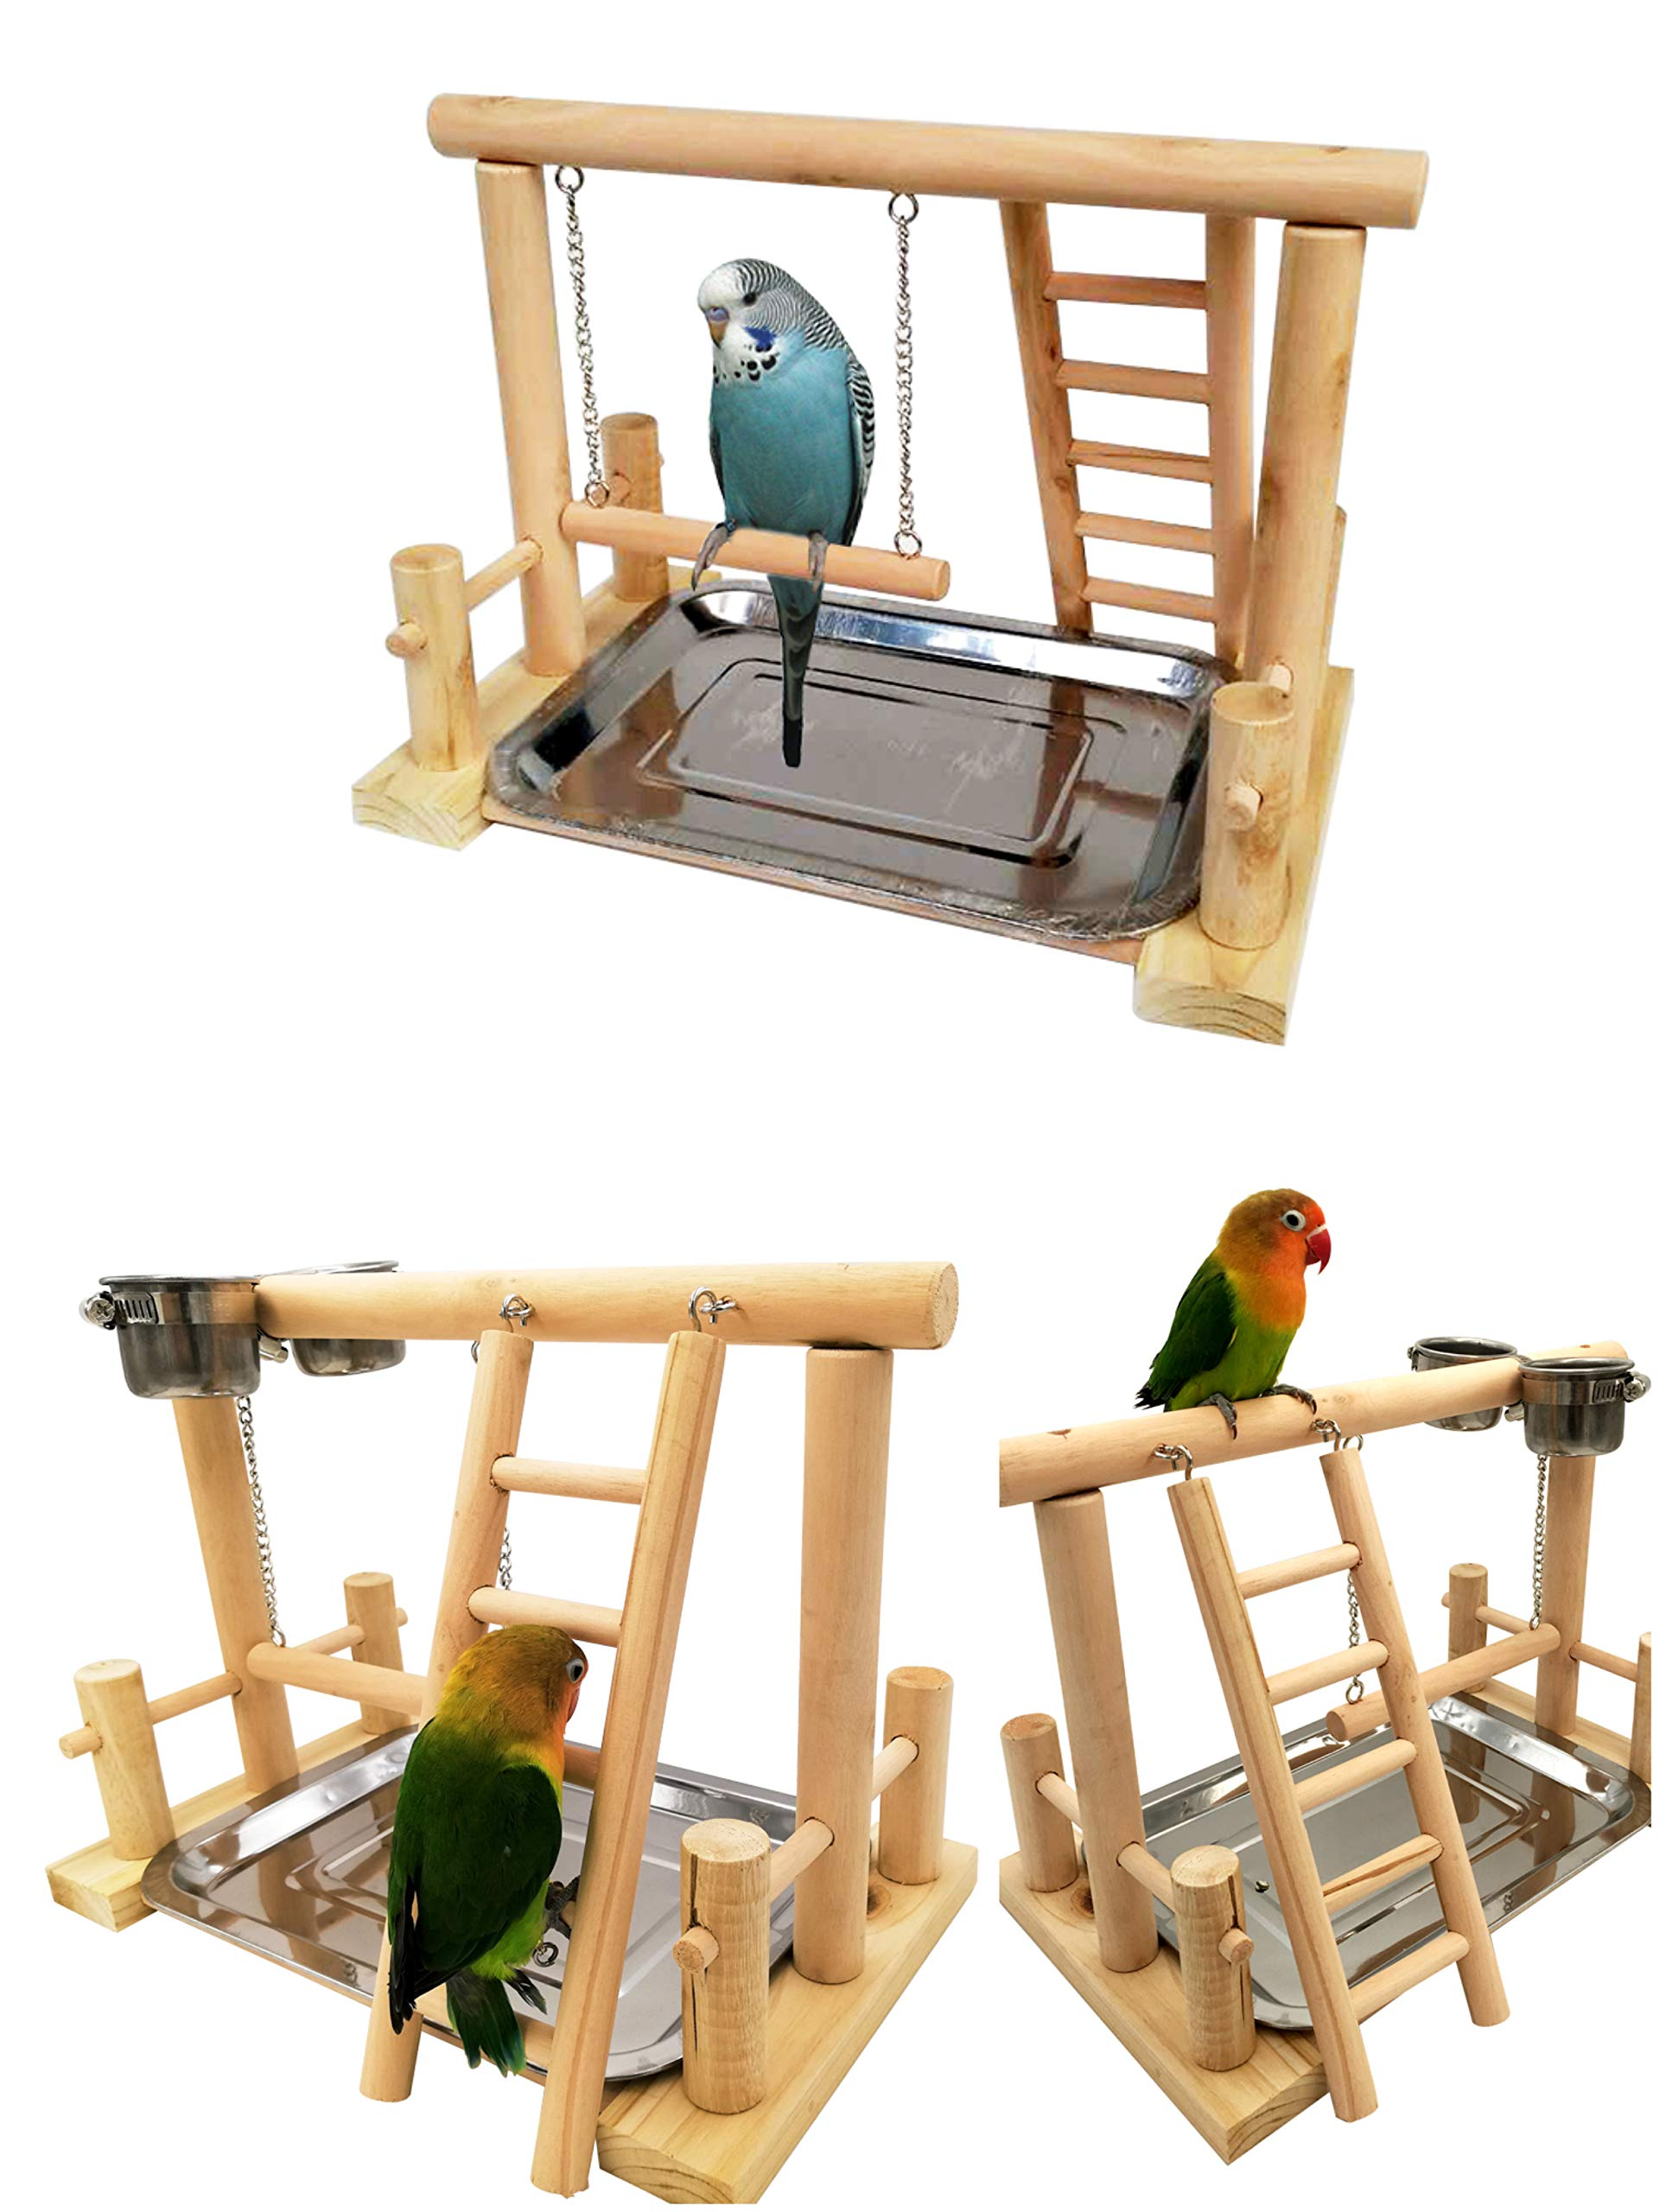 Borangs Parrots Playstand Bird Playground Wood Perch Training Stand Cockatiel Playpen Ladders Birds Swing Wood Gym Tabletop with Feeder Cups Toys Exercise Play by Borangs